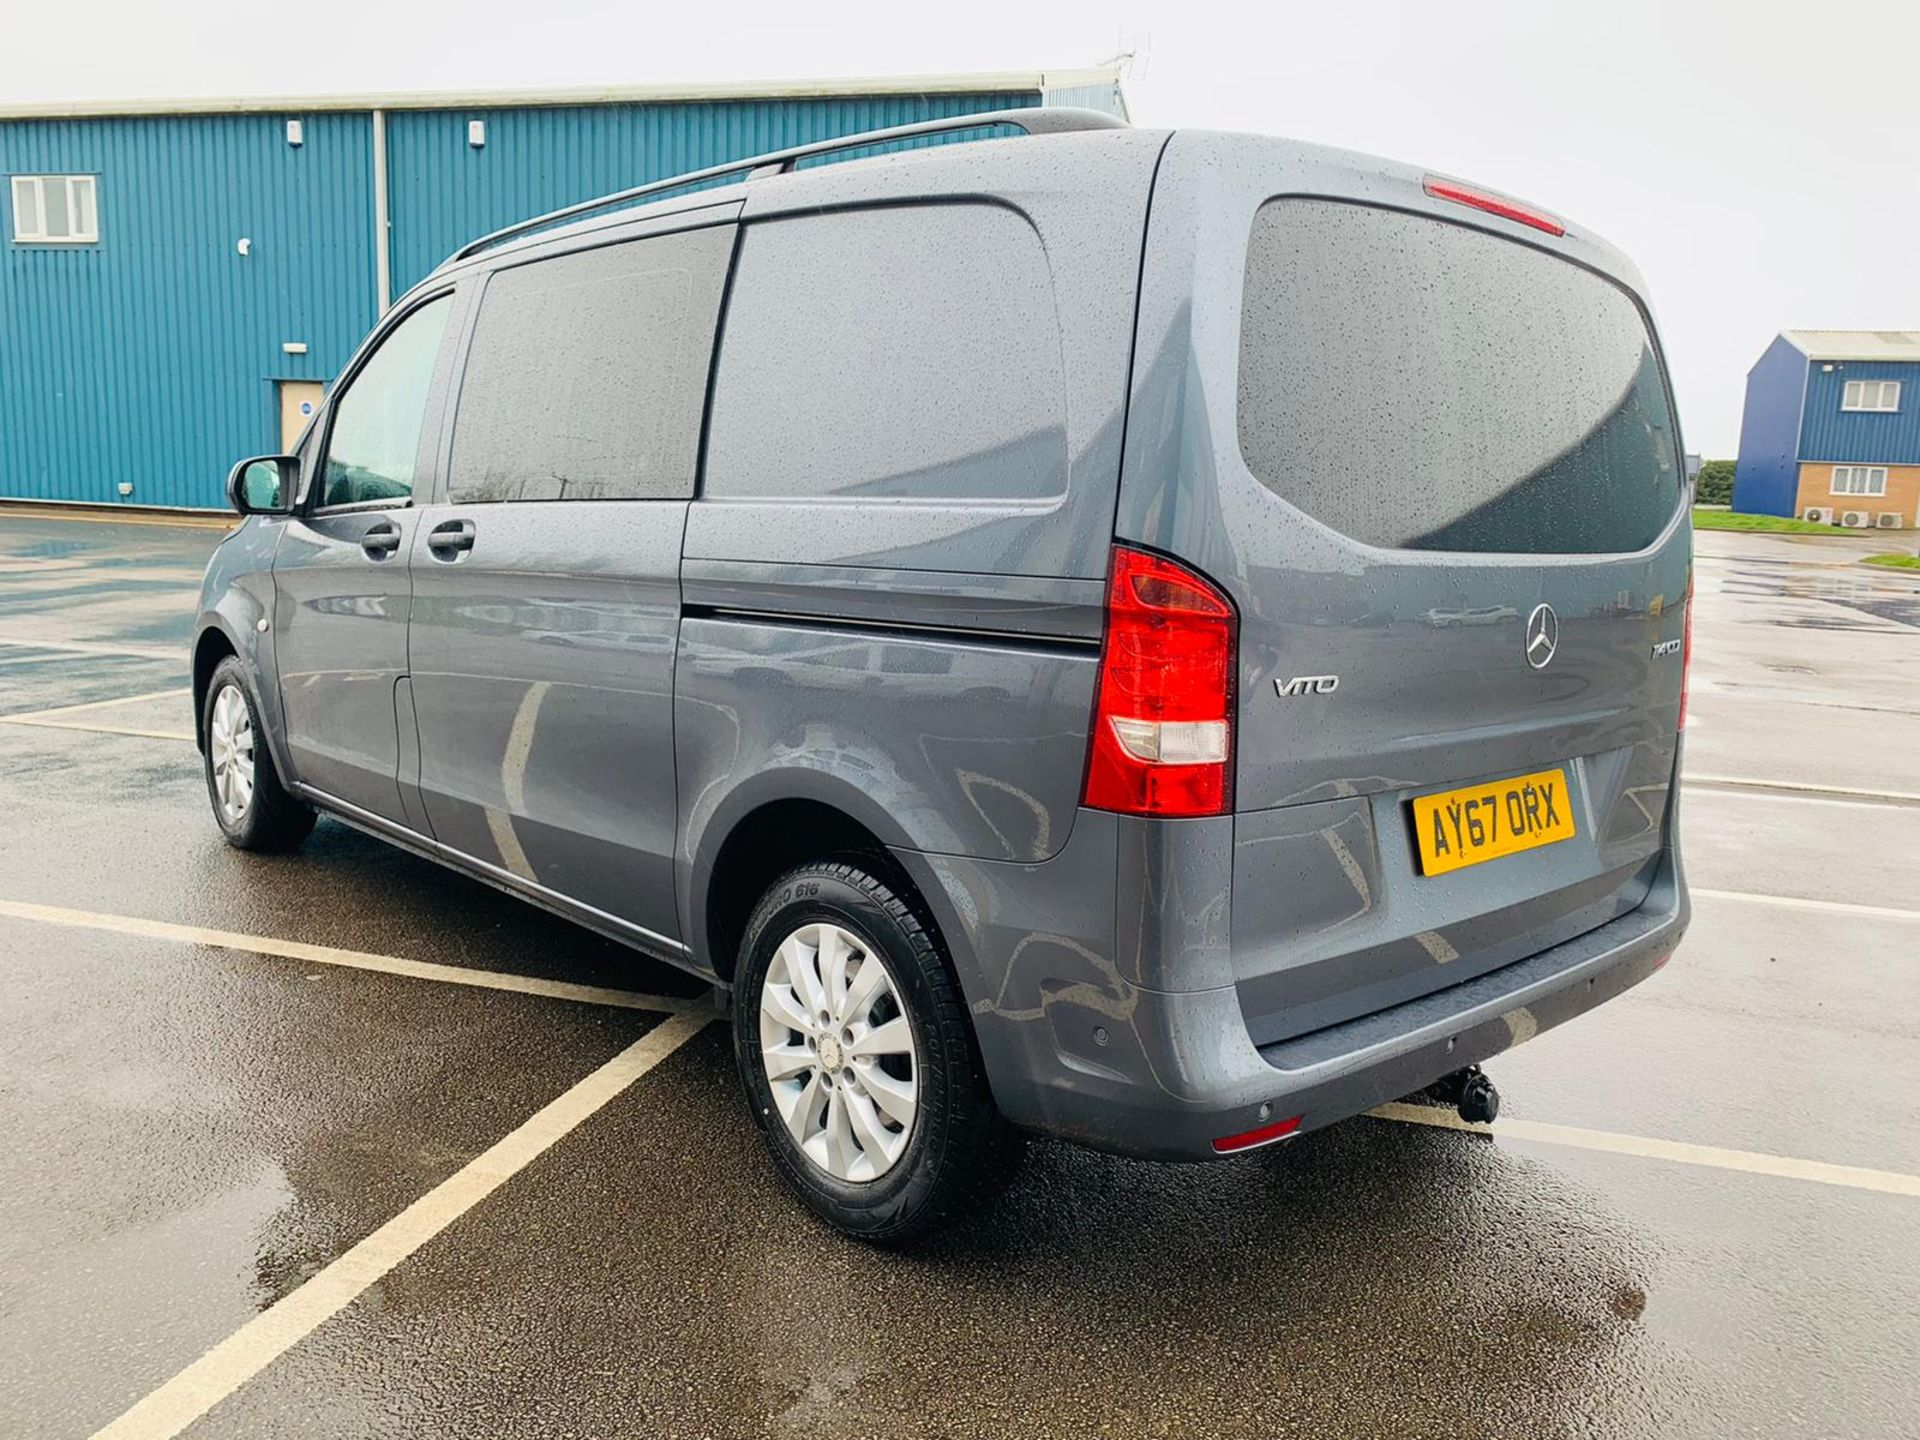 Mercedes Vito 114 Bluetec Dualiner/Crew Van - Auto - Air Con - 2018 Model- 1 Owner From New - Image 4 of 30